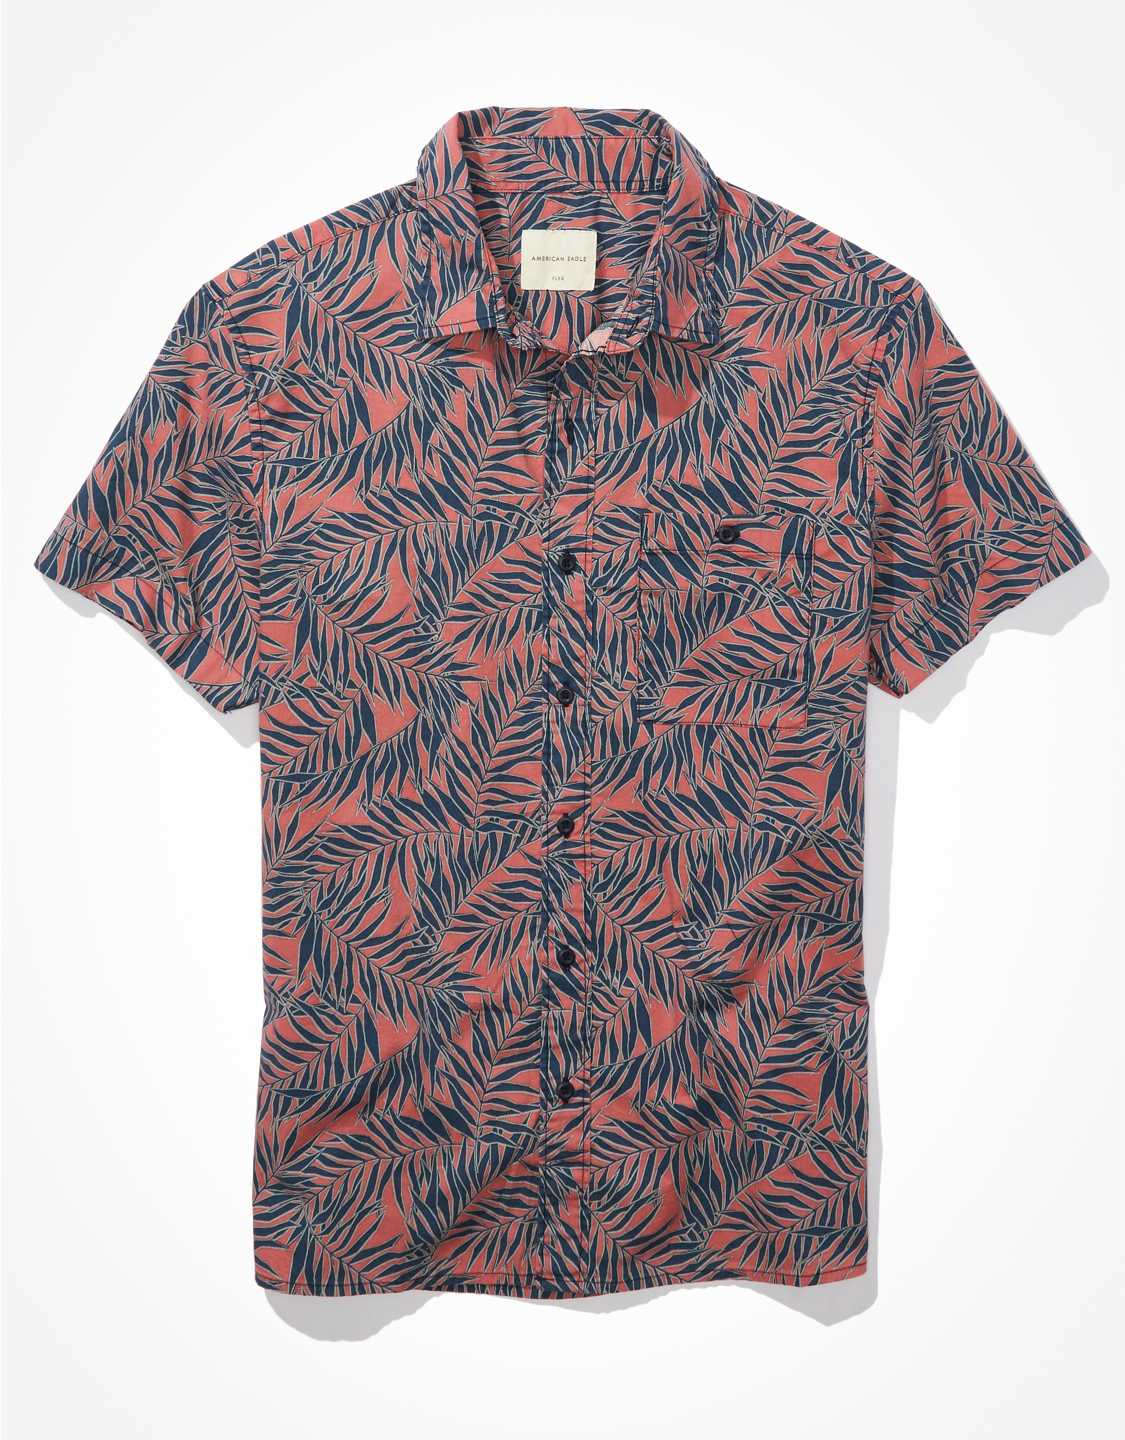 .98 AE Tropical Short-Sleeve Button-Up Shirt + Free shipping over  at American Eagle!